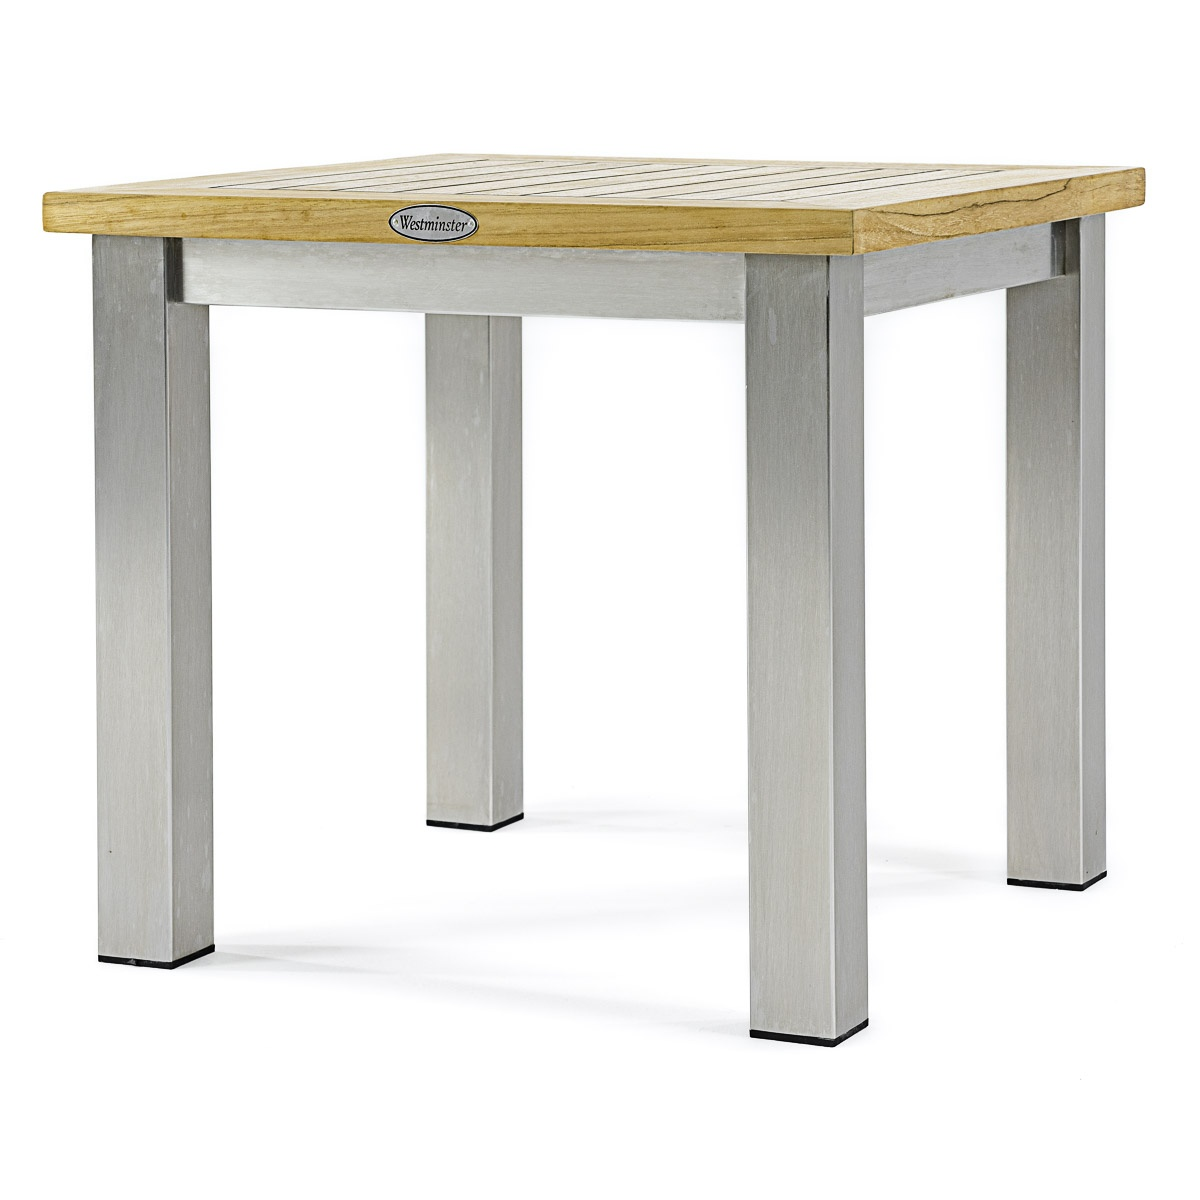 Vogue Teak Stainless Steel Outdoor End Table Westminster Teak - Teak outdoor end table